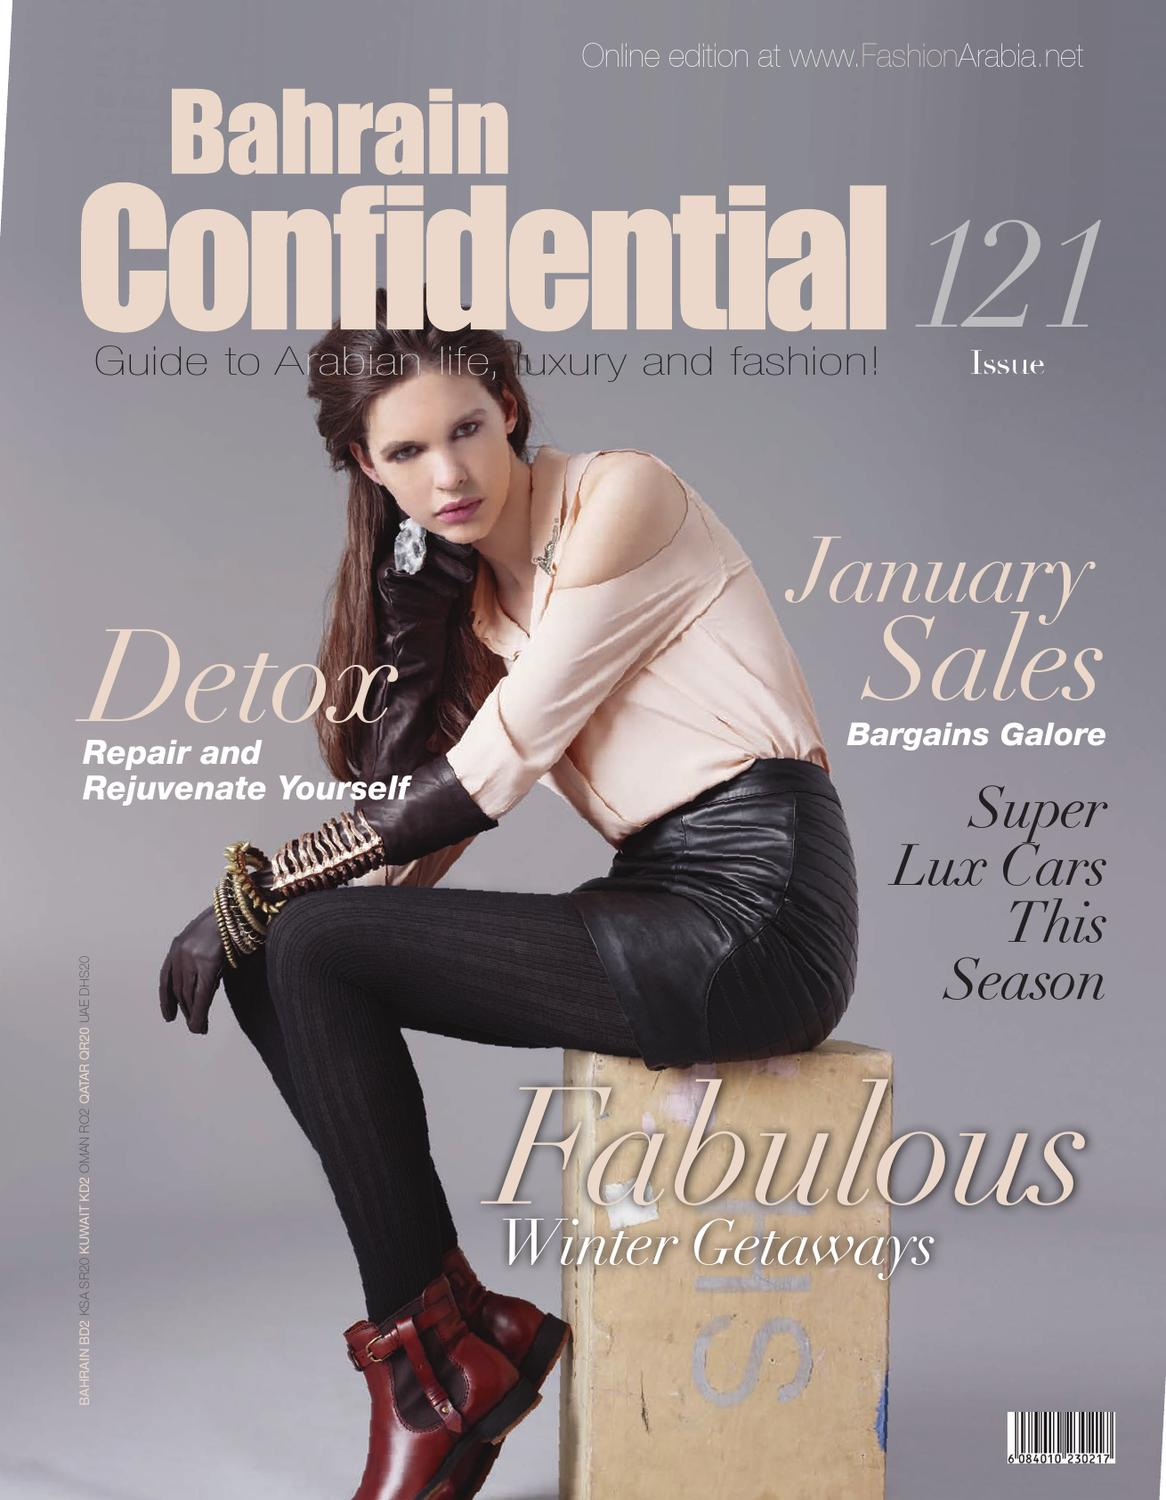 Bahrain Confidential January 2013 by Arabian Magazines - issuu e8840577c